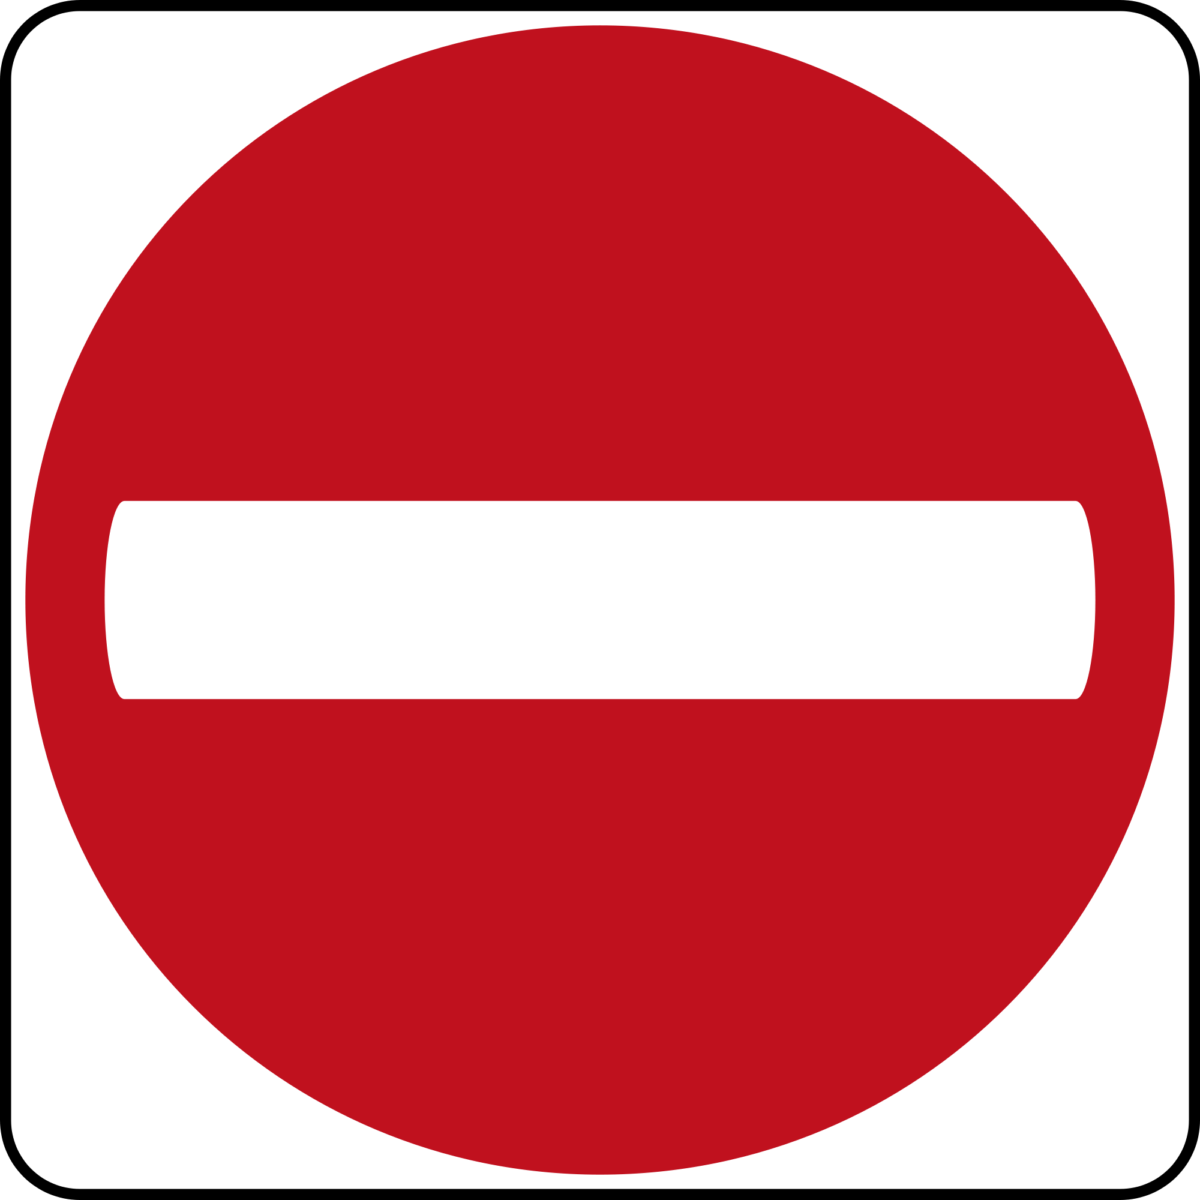 750mm Square Road Sign Plates